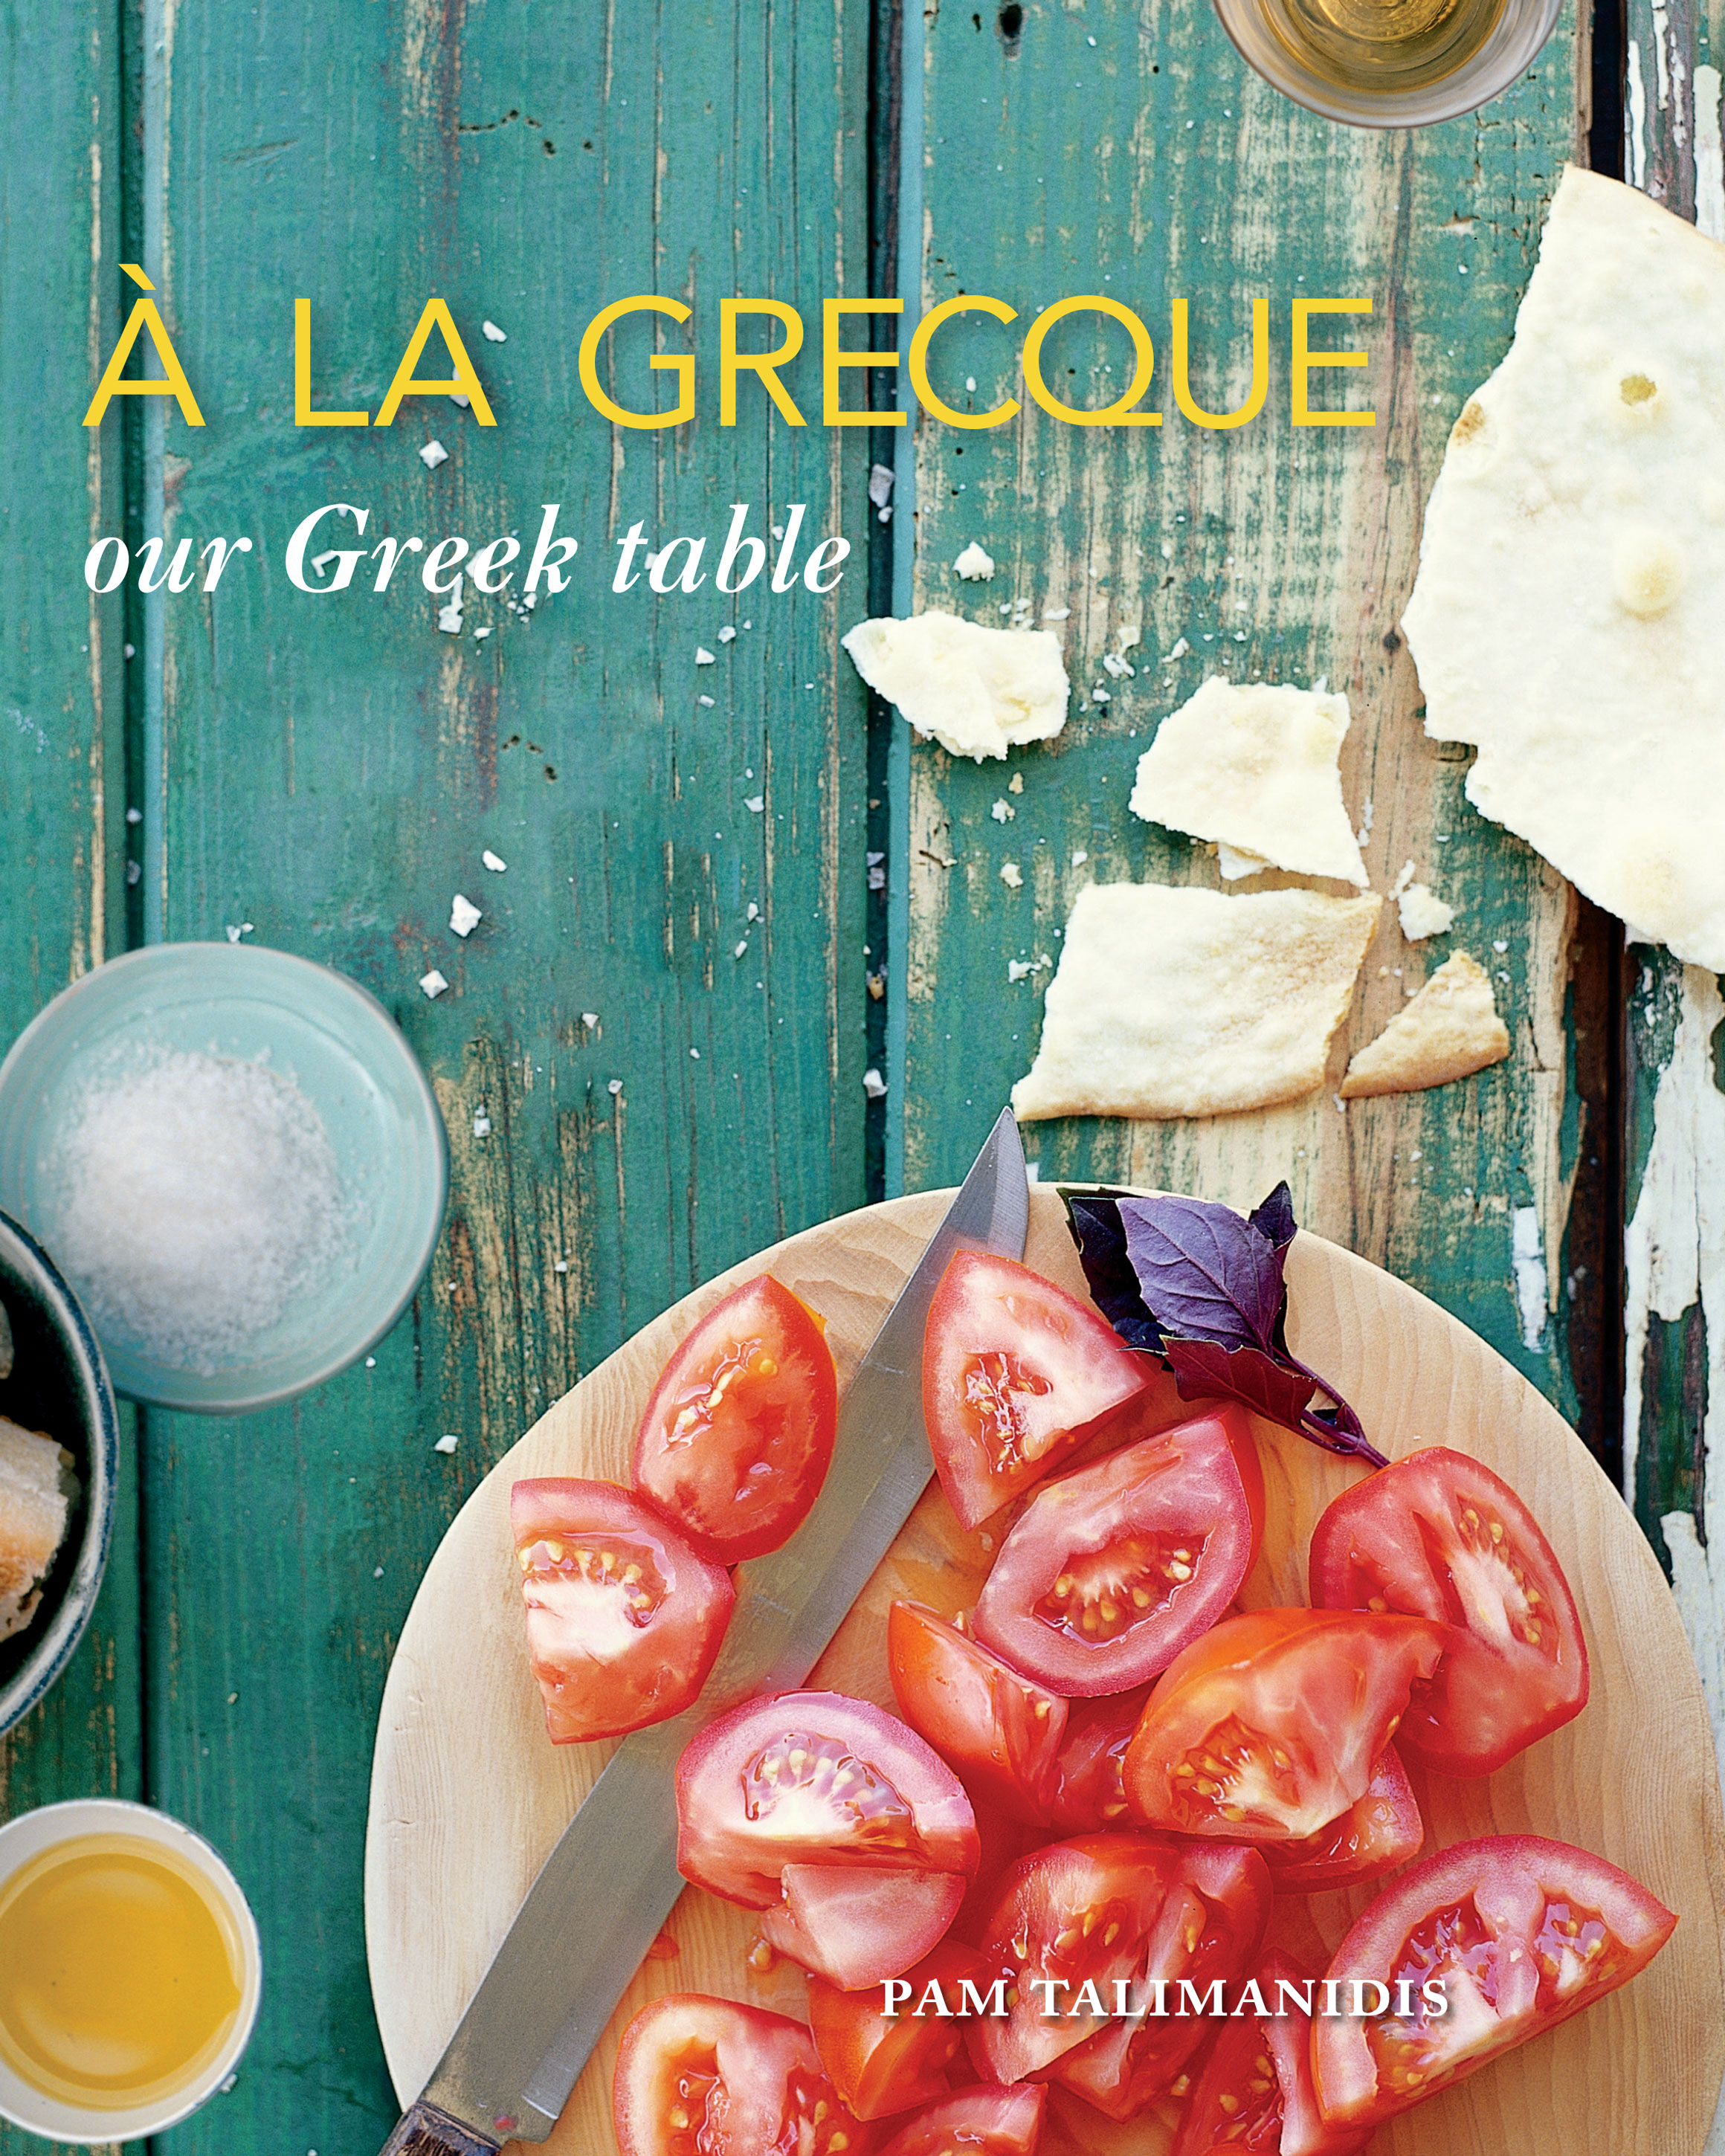 A La Grecque (Global Edition)